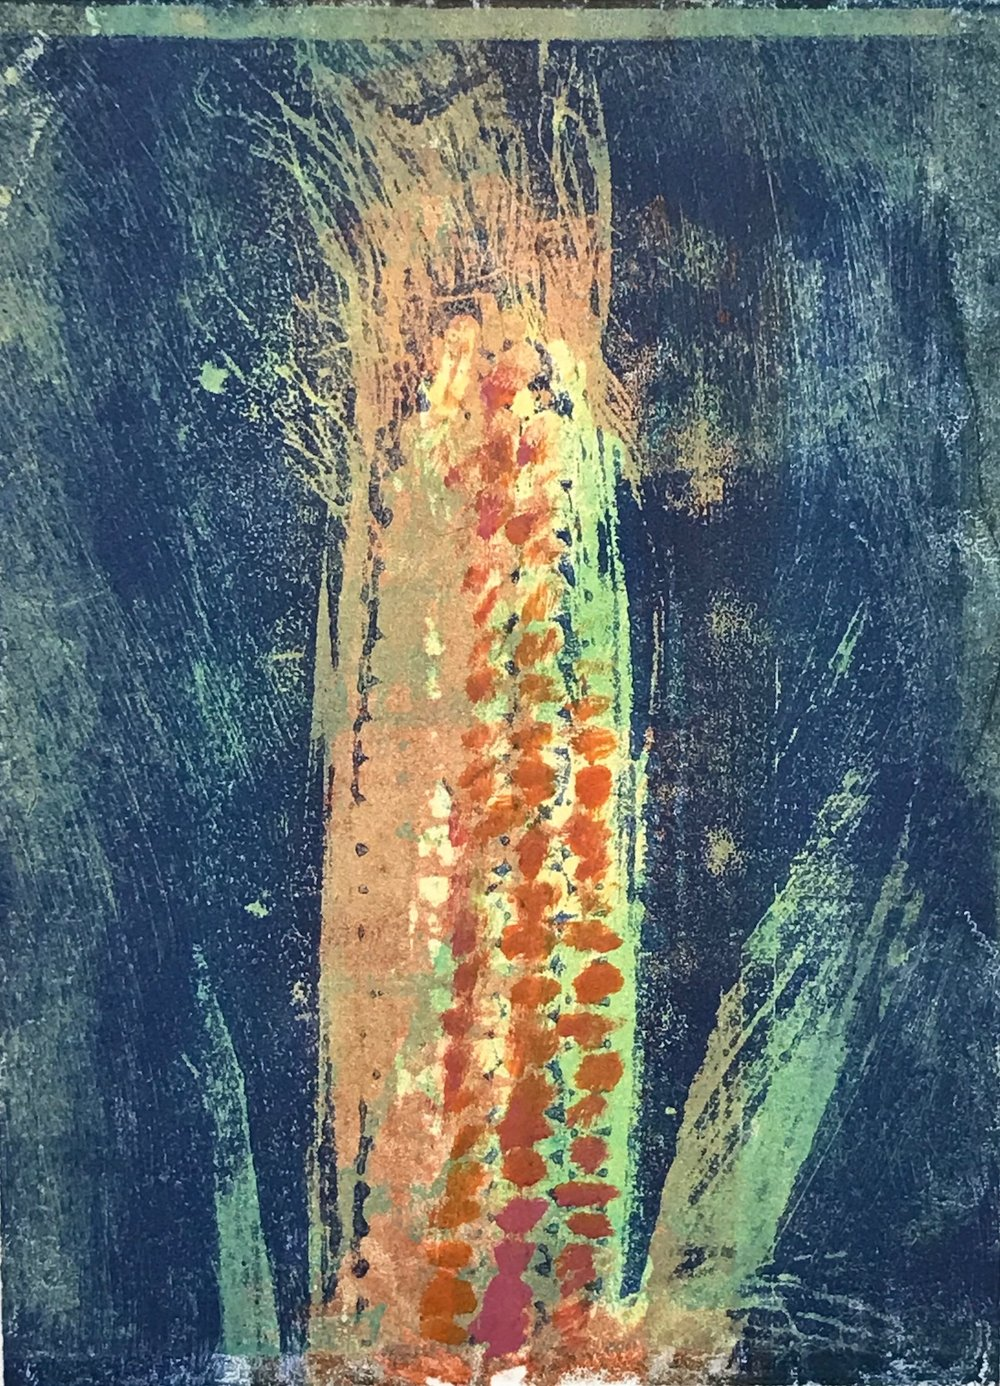 """Corn"", monoprint, 10"" x 8"", $150 (unframed)"